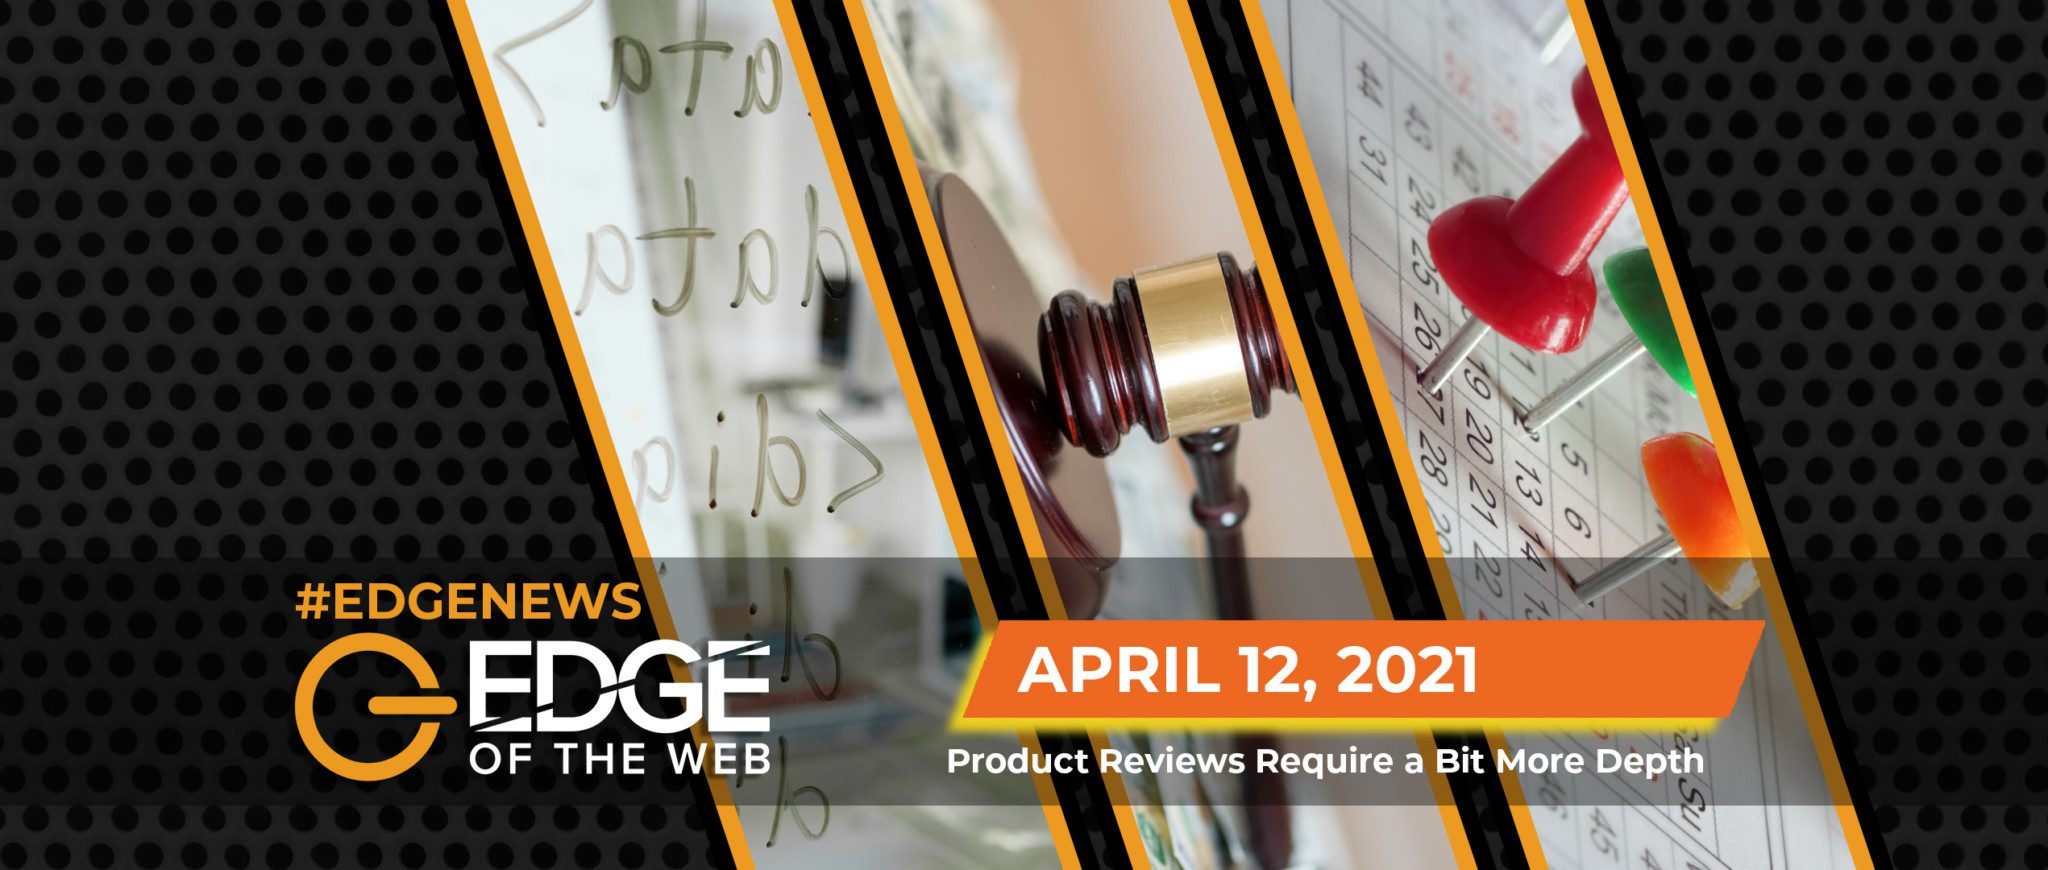 EDGE News Featured Image April 12th